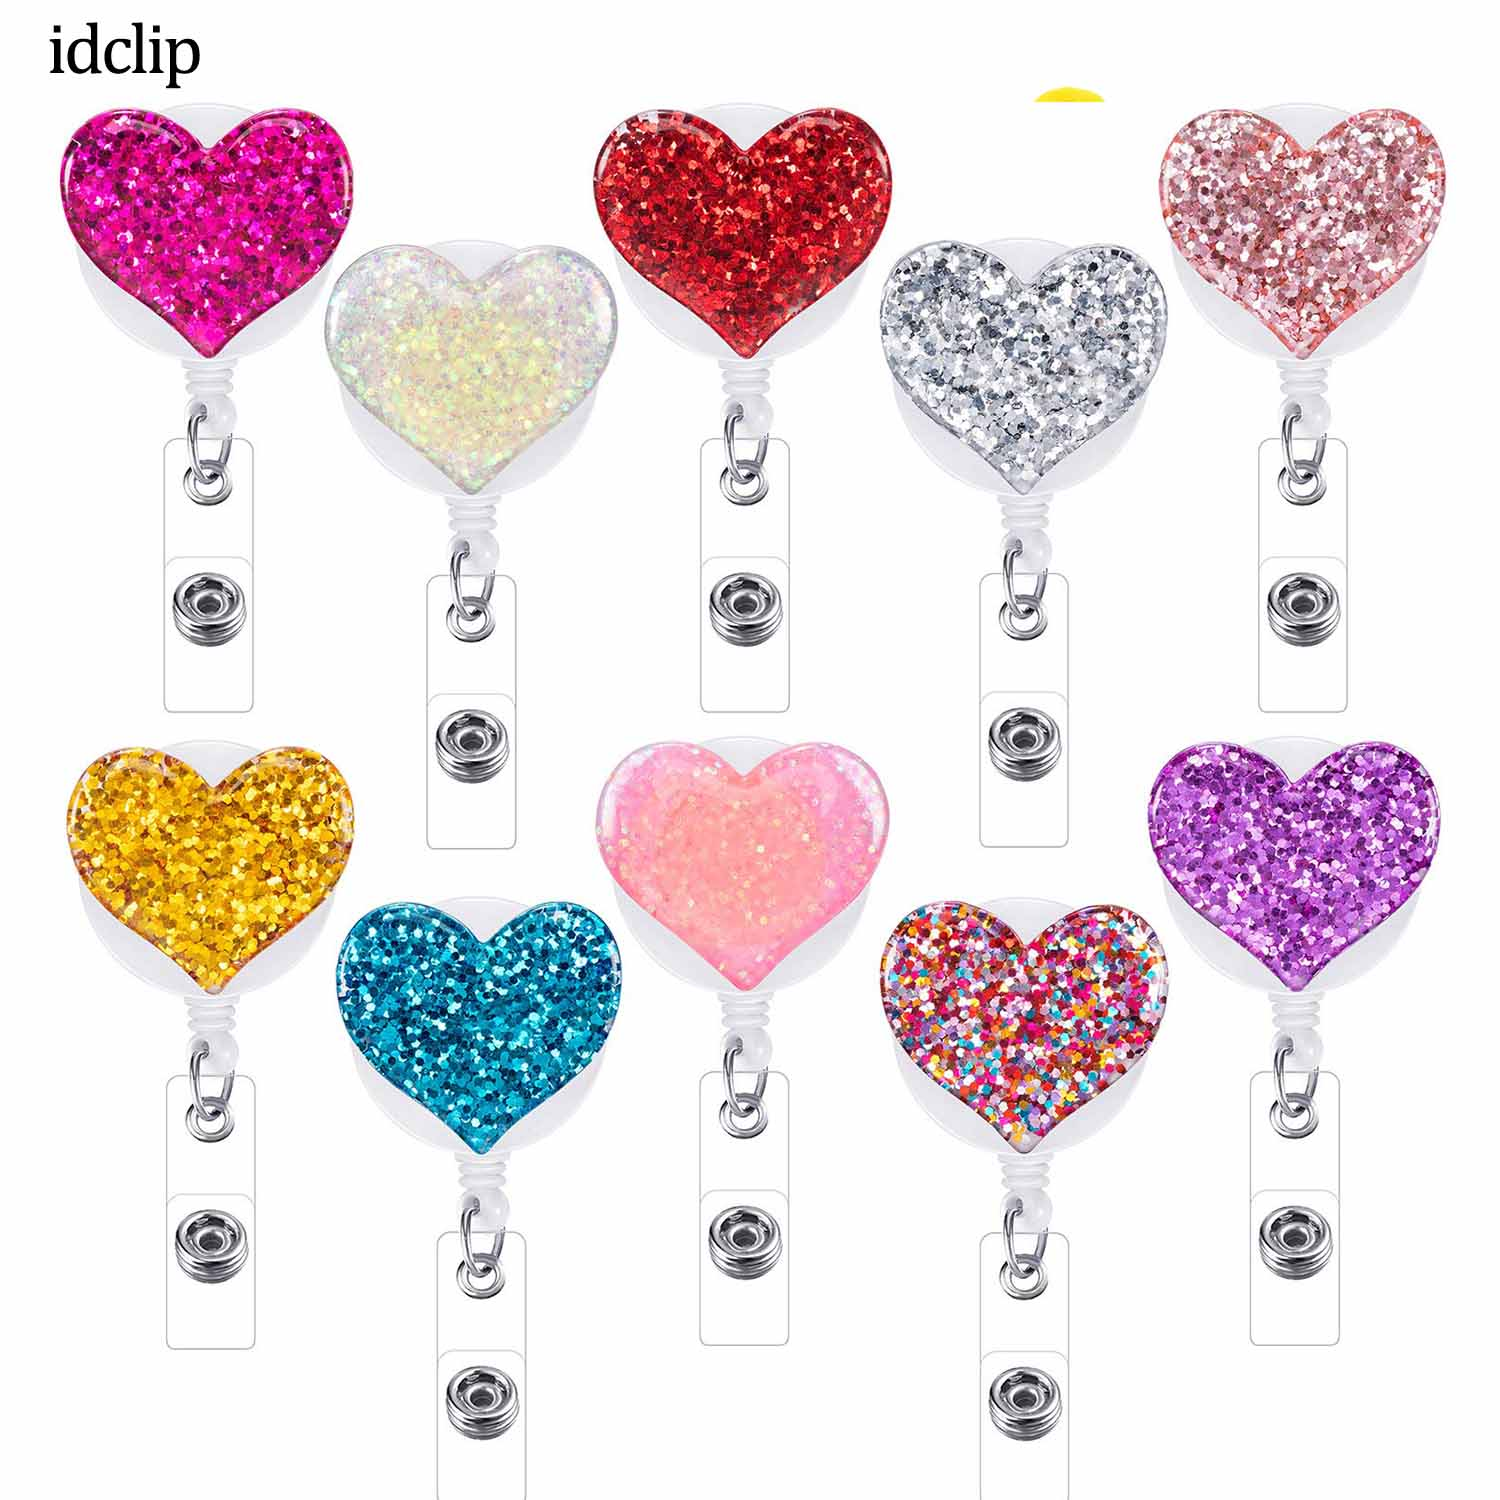 Idclip 10 Pcs Bling Love Heart Retractable Badge Holder Badge Clips For Nurse ID Badge Reel With Alligator Clip